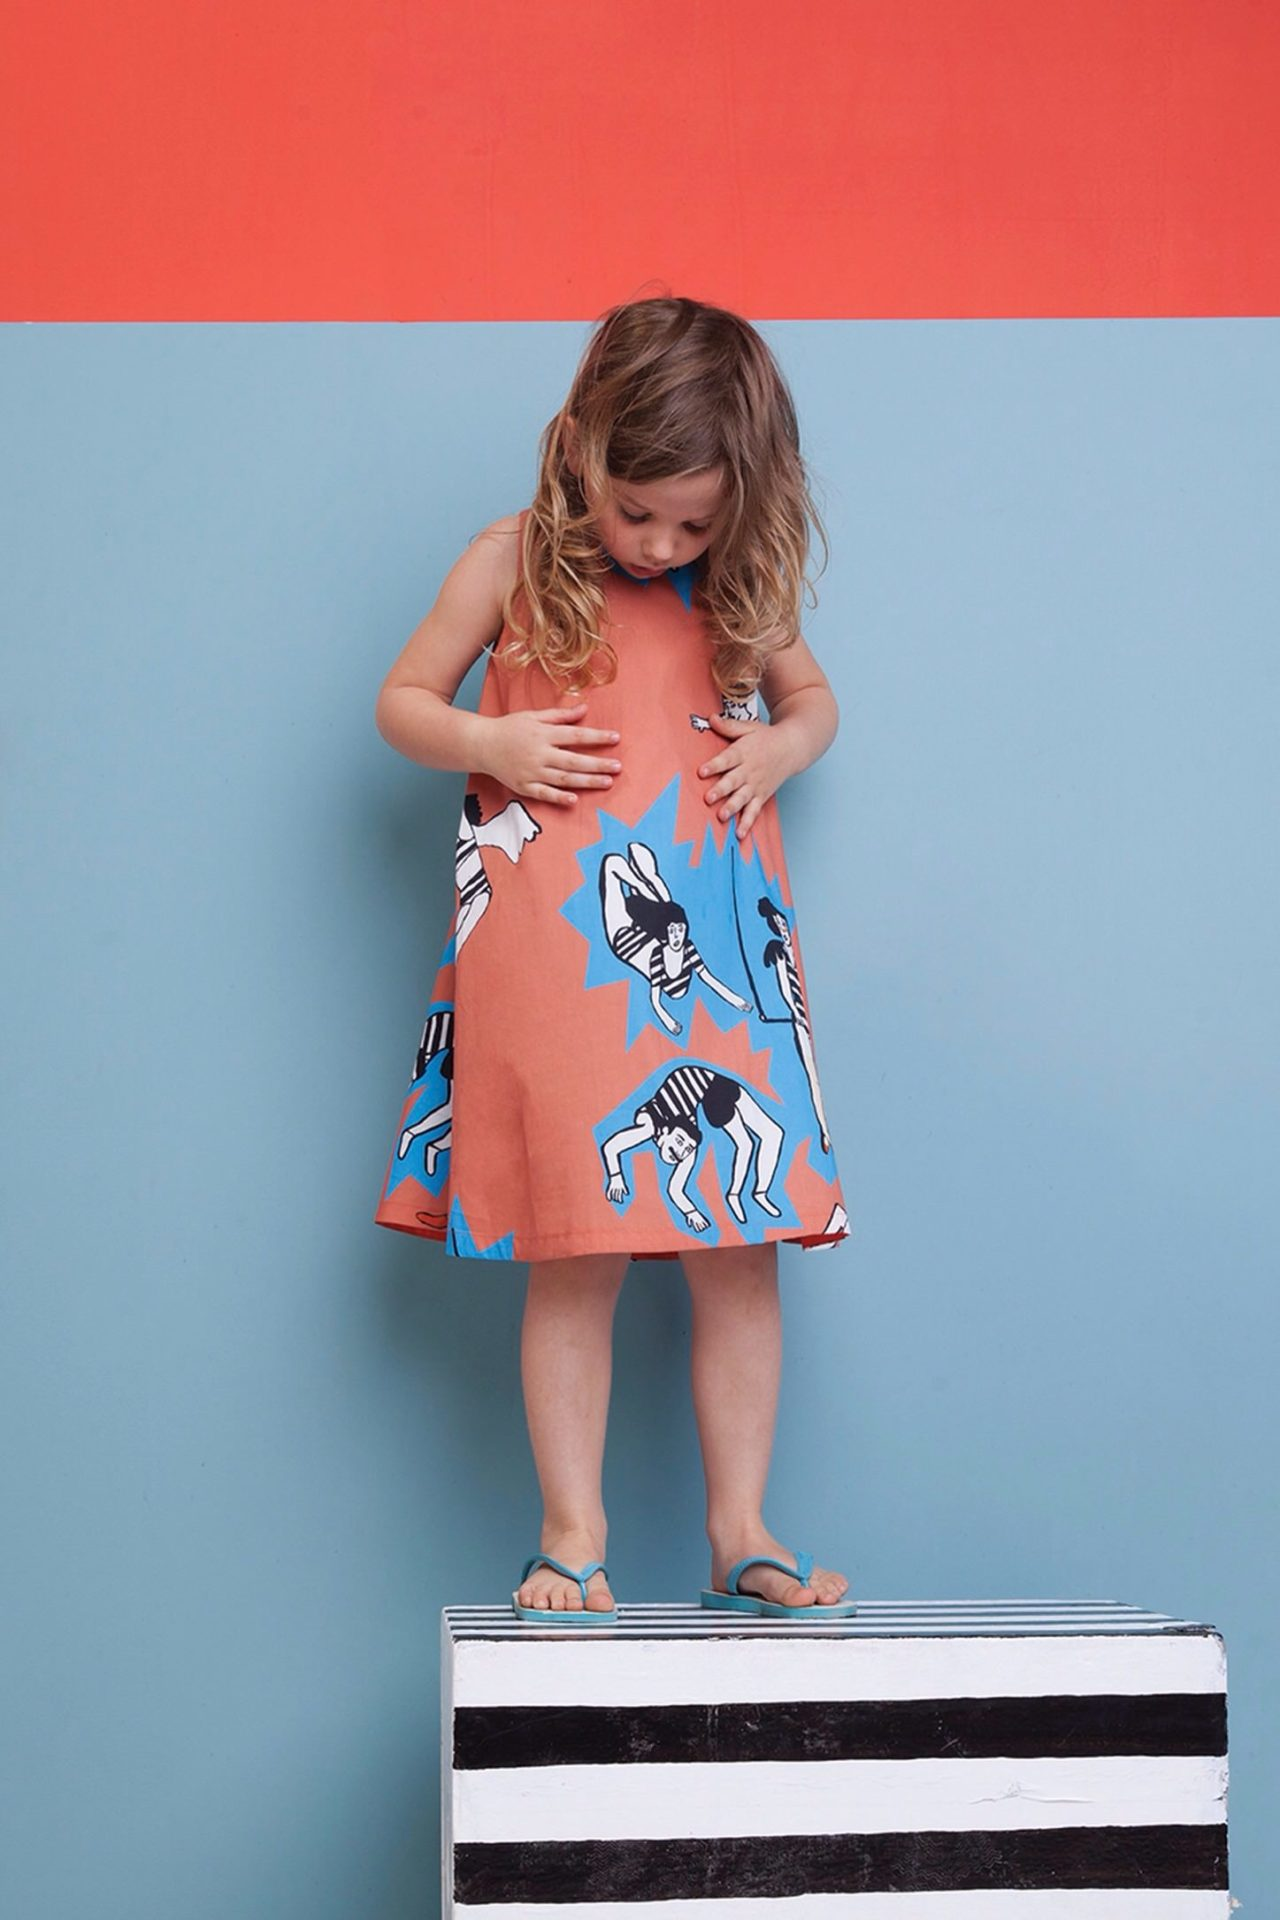 Wonderfull acrobat print by Lucy Kirk for Milk & Biscuits Spring 2017 kids fashion